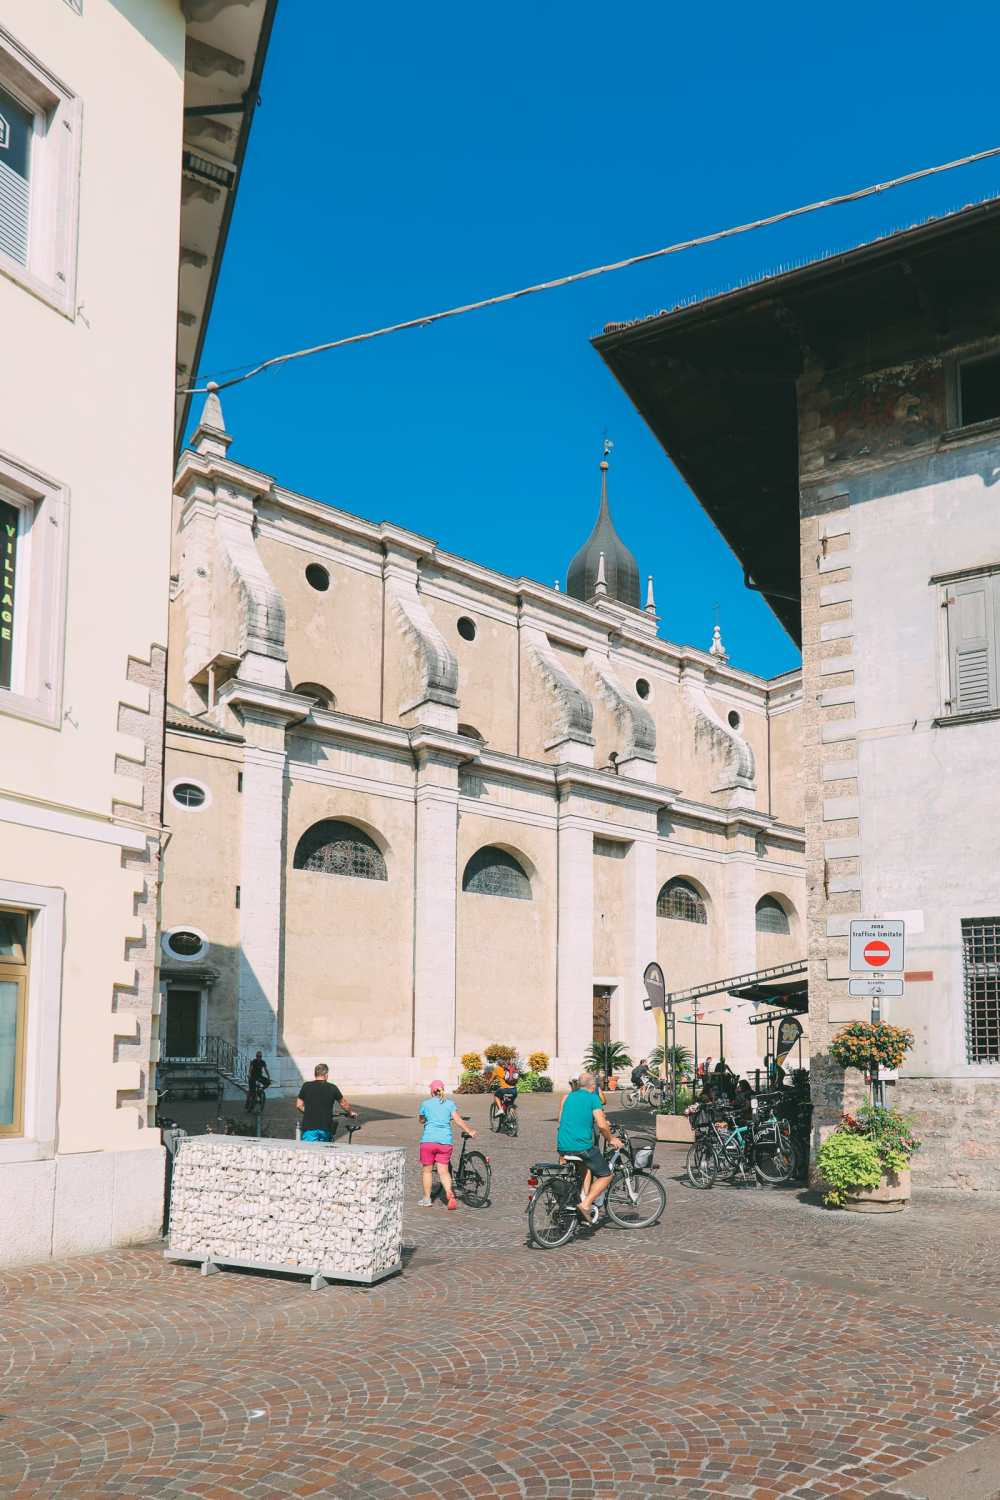 A Trip To One Of The Most Beautiful Parts Of Italy - Garda Trentino (10)